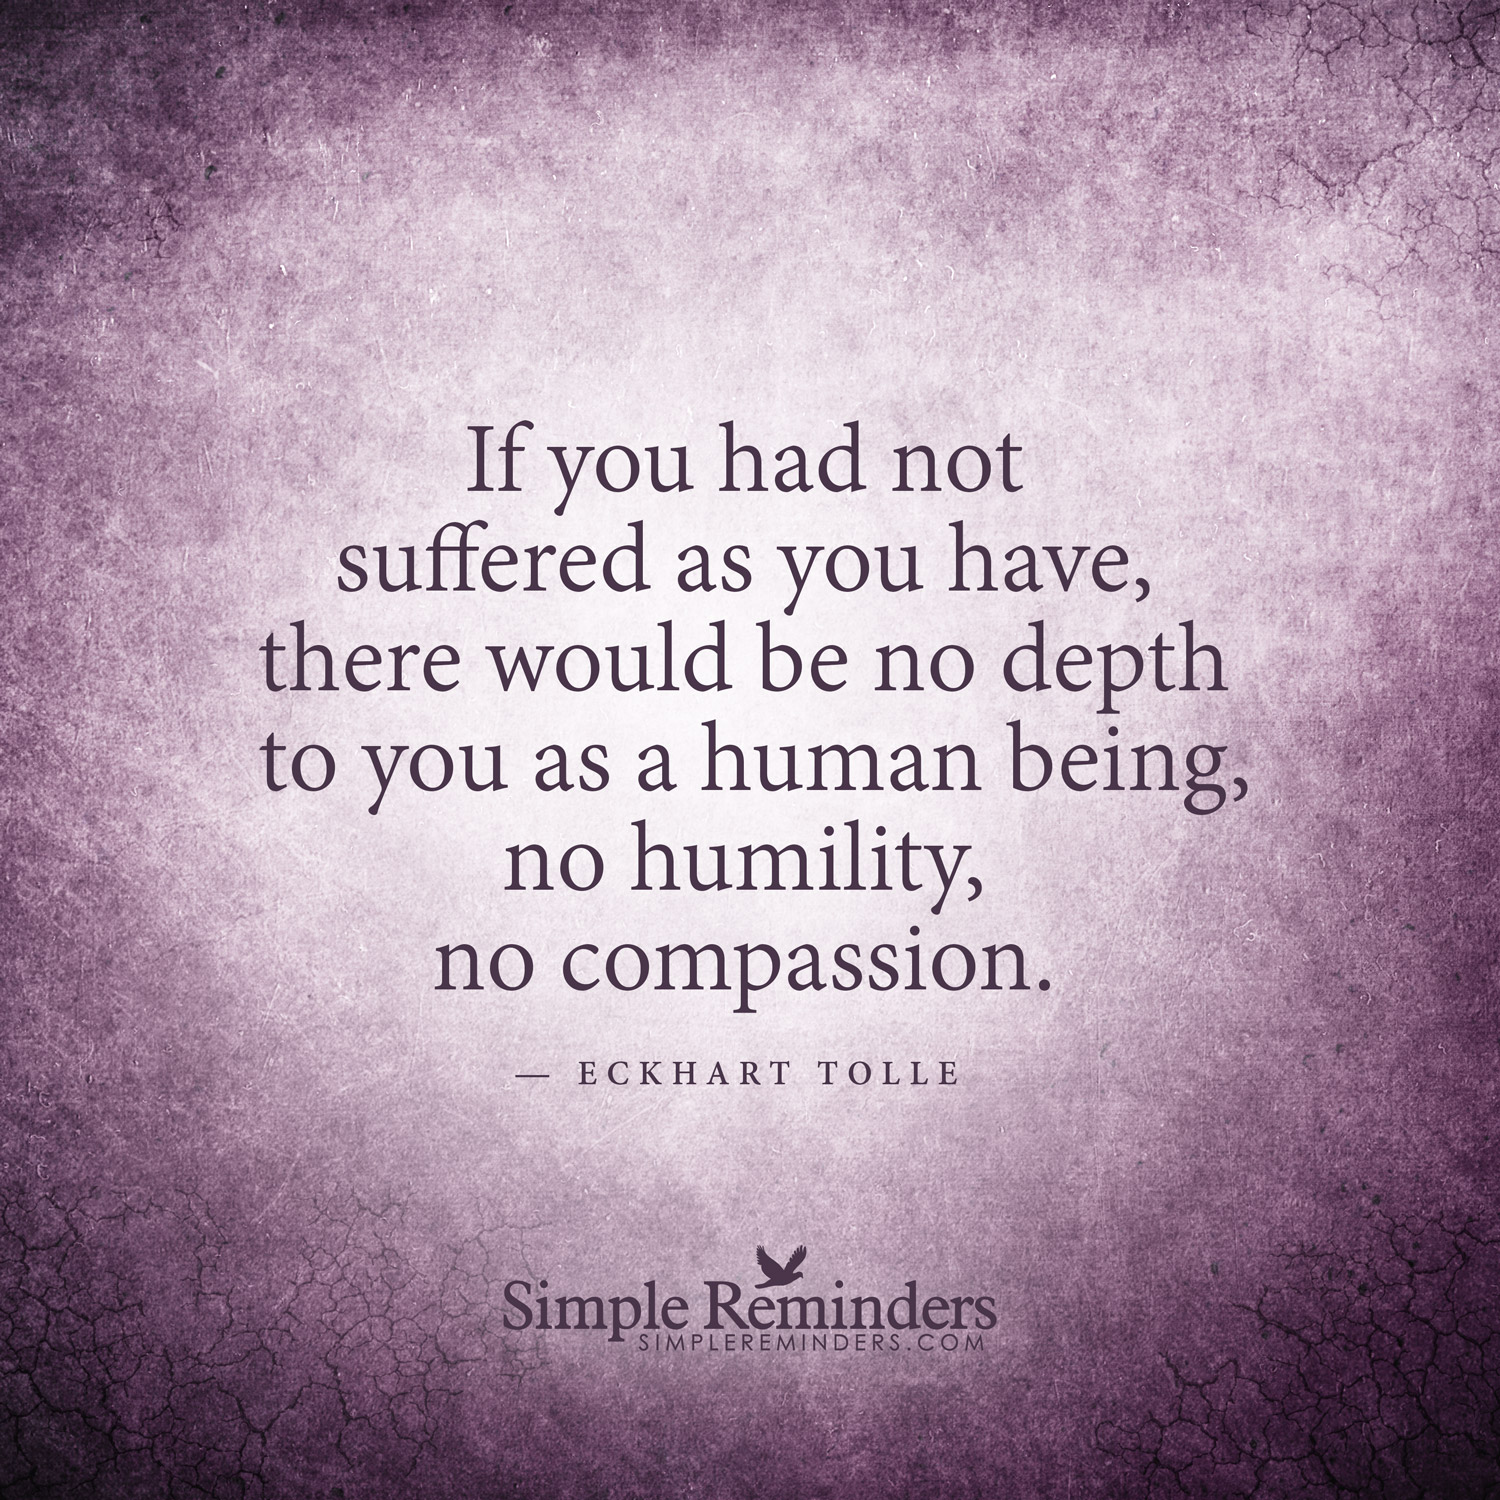 compassion-suffering